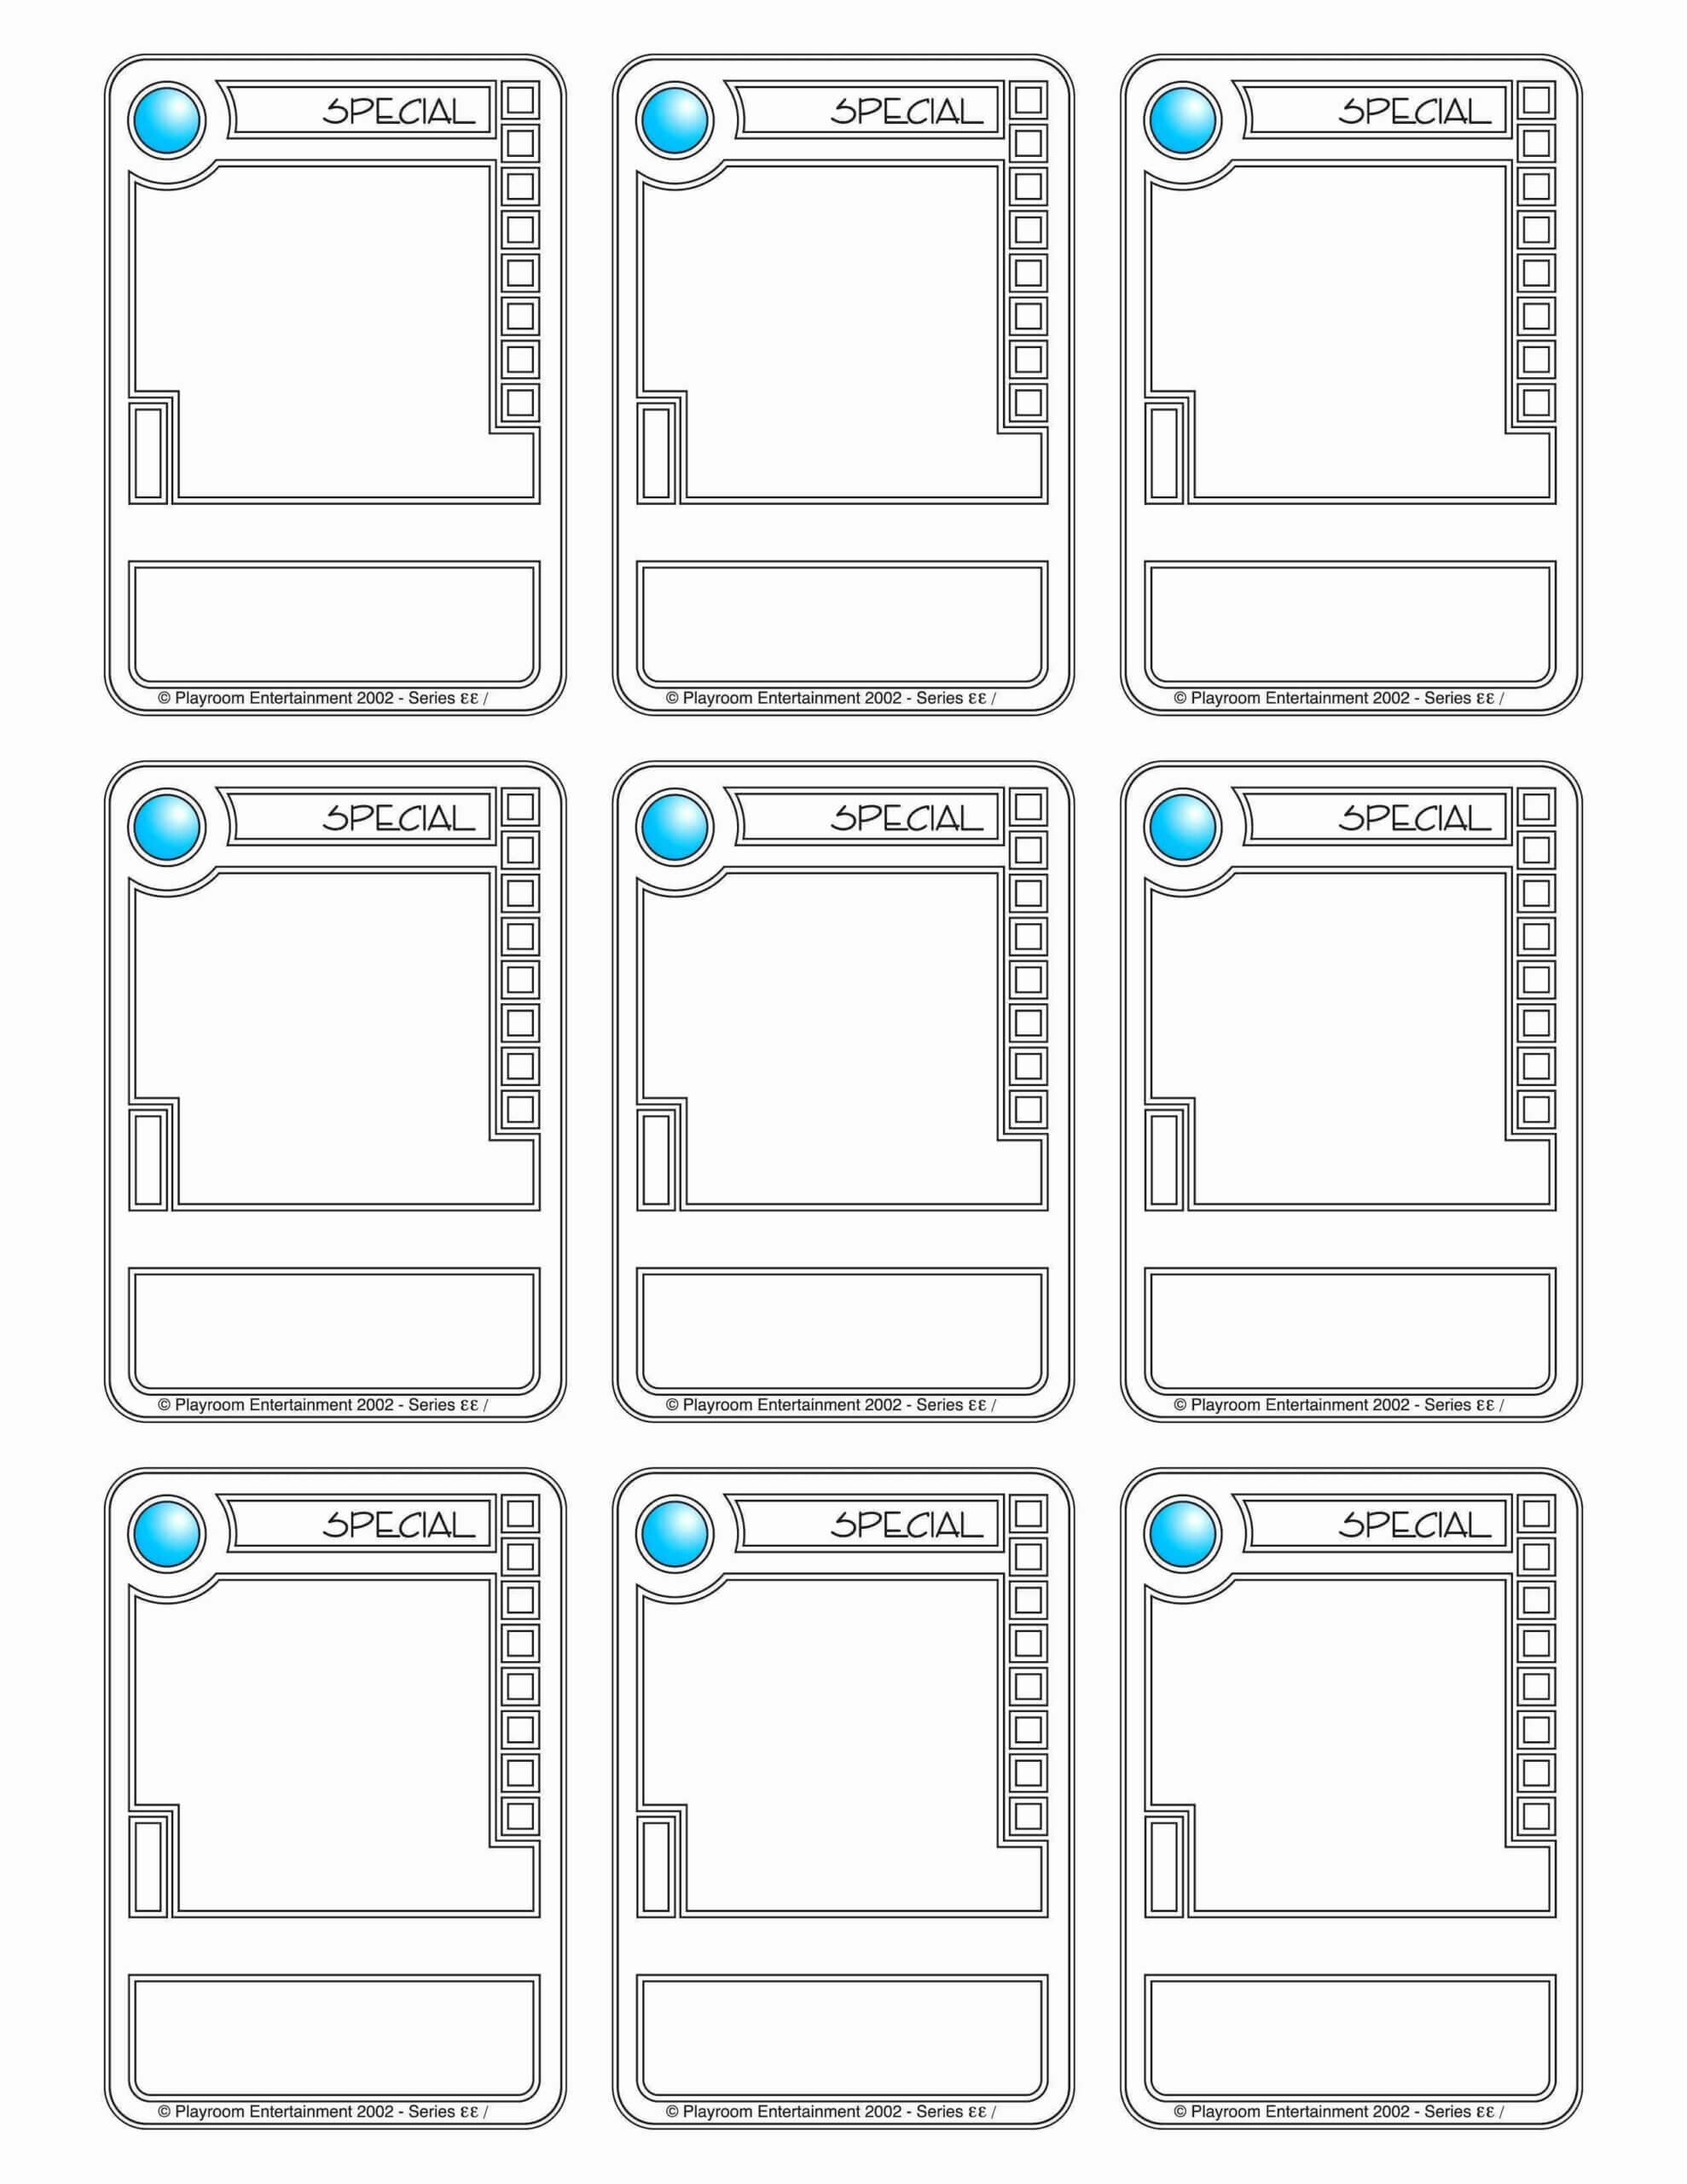 001 Trading Card Maker Free Examples Template For Success In Regarding Free Trading Card Template Download